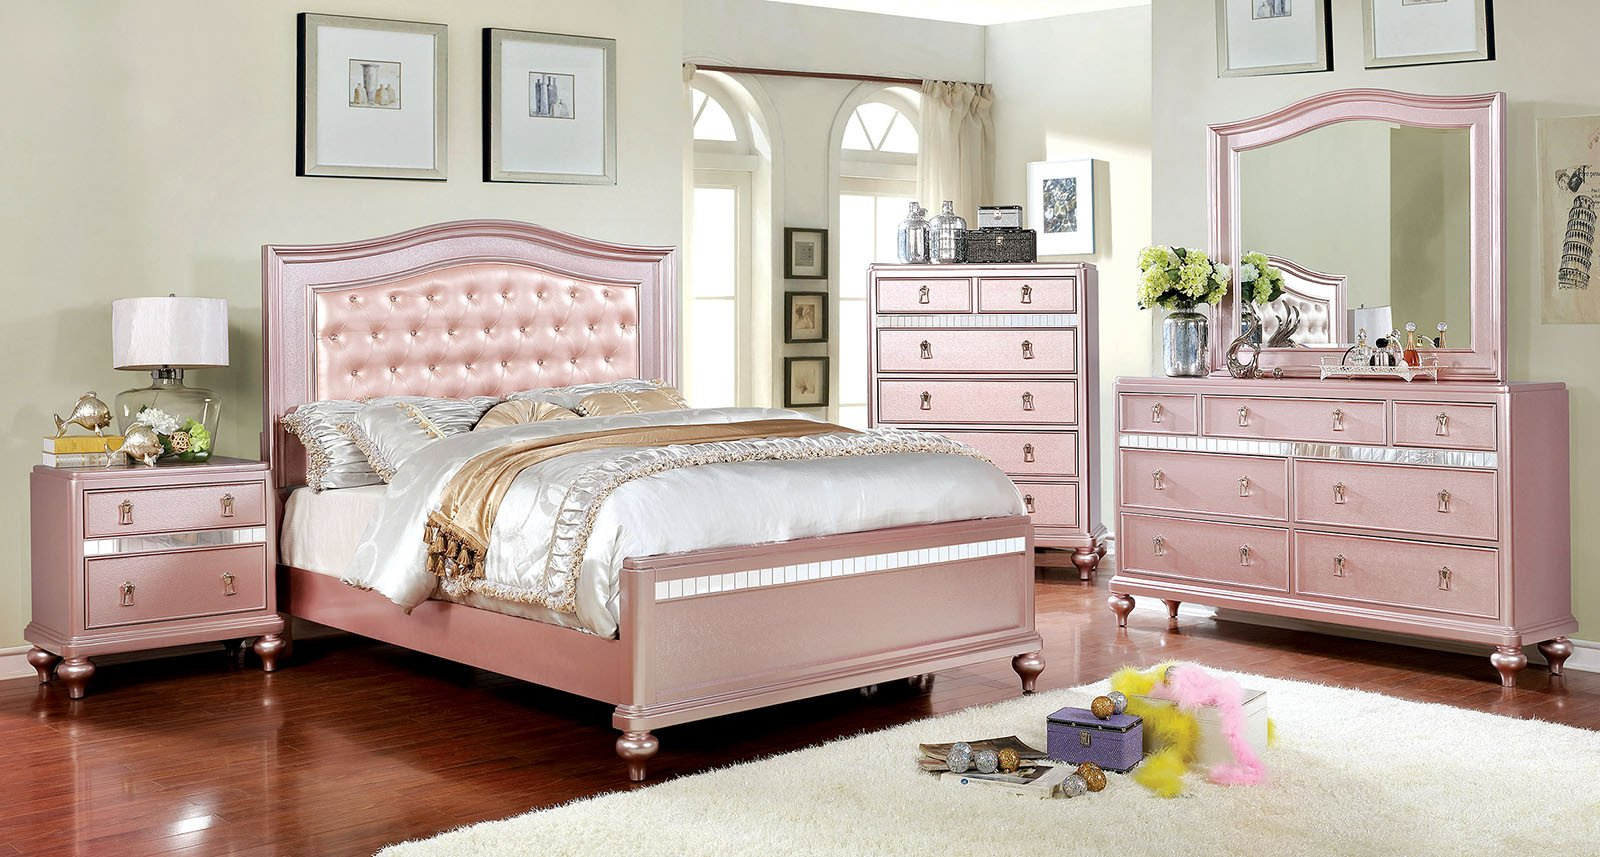 Tufted Headboard Bedroom Set Beautiful Ariston Rose Gold Finish Queen Size Bed with Mirrored Trim Jeweled button Tufted Padded Leather Headboard